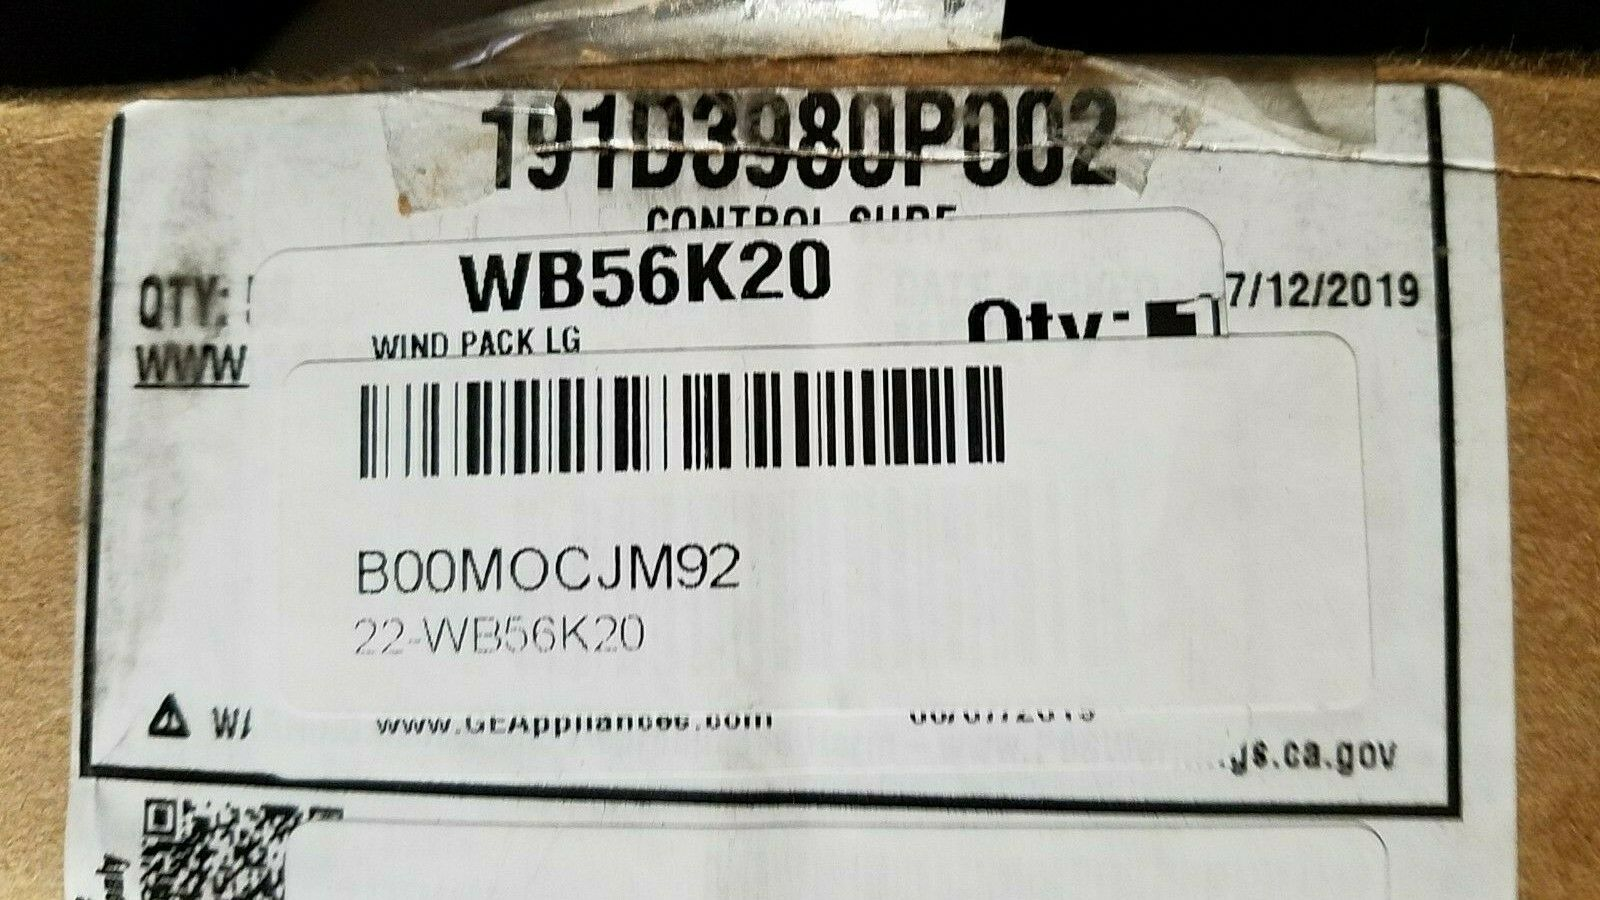 General Electric WB56K20 Range//Stove//Oven Window Pack brand new original GE part